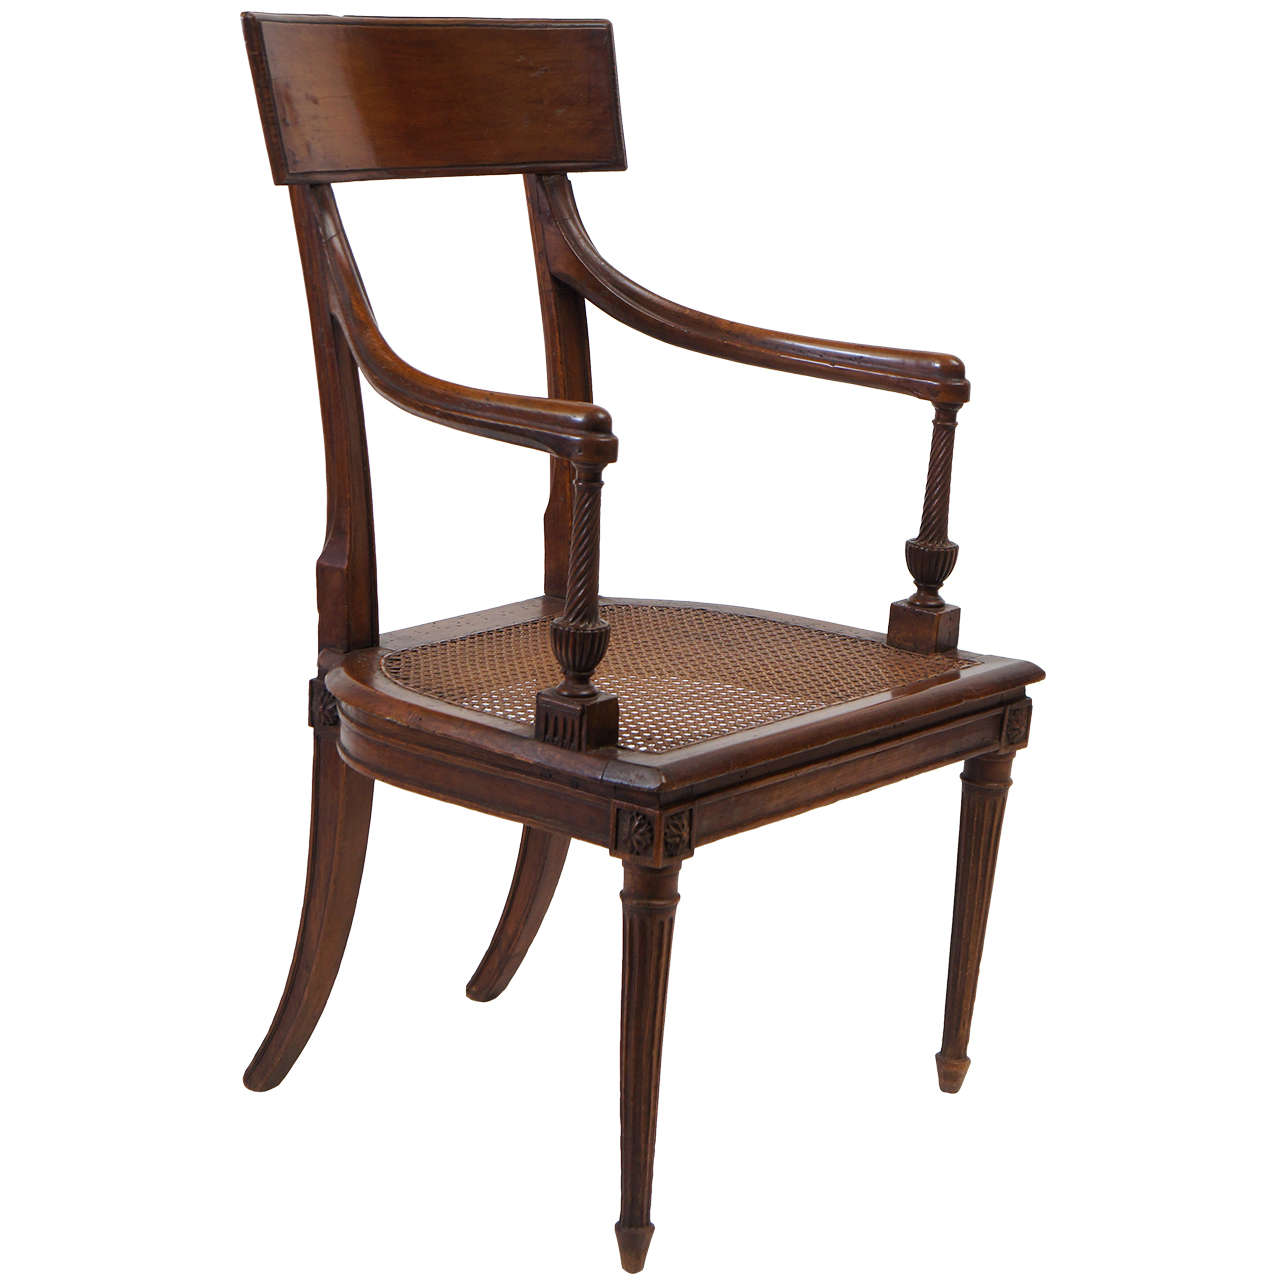 Important Louis XVI Fauteuil Attributed to Georges Jacob, c. 1785 ...